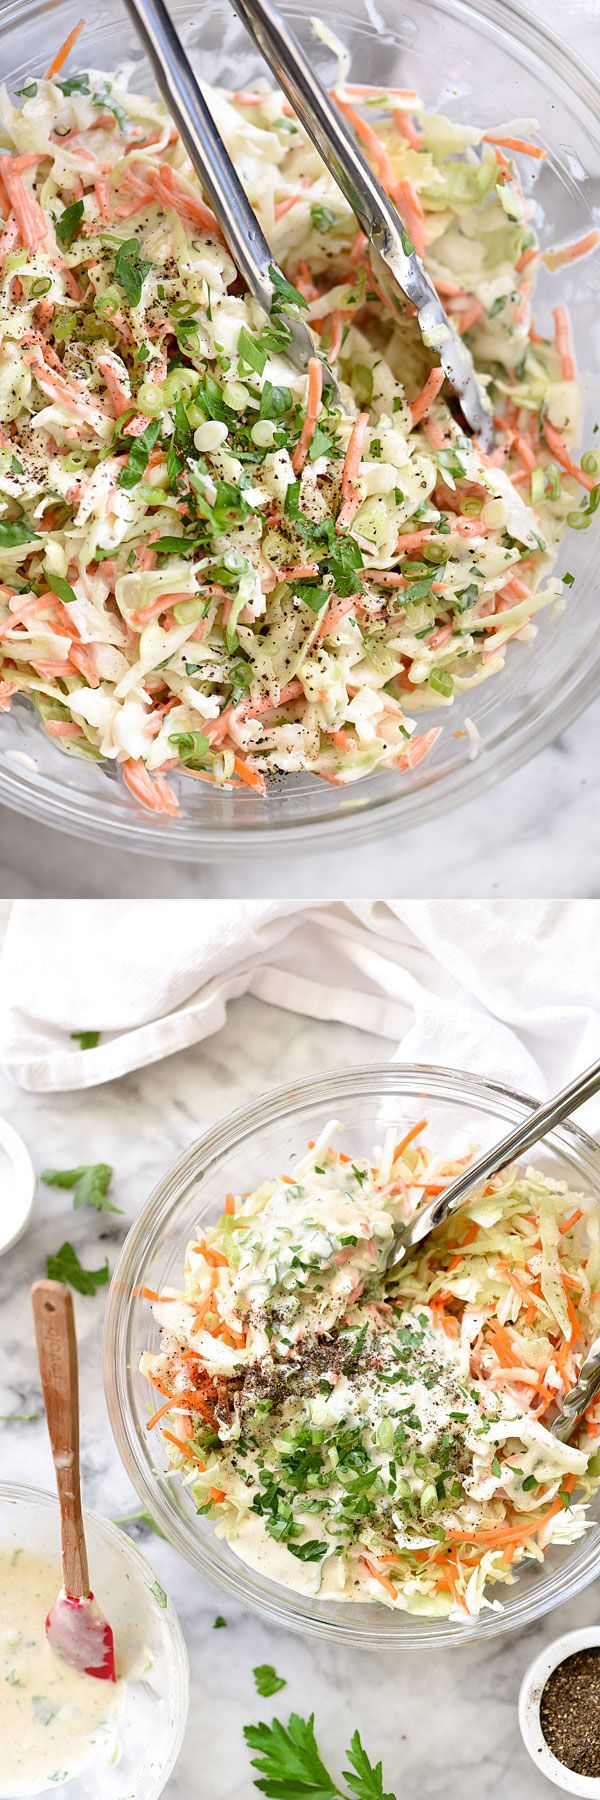 It's not soupy, it's not goopy. It's simply the best #coleslaw I've made on foodiecrush.com